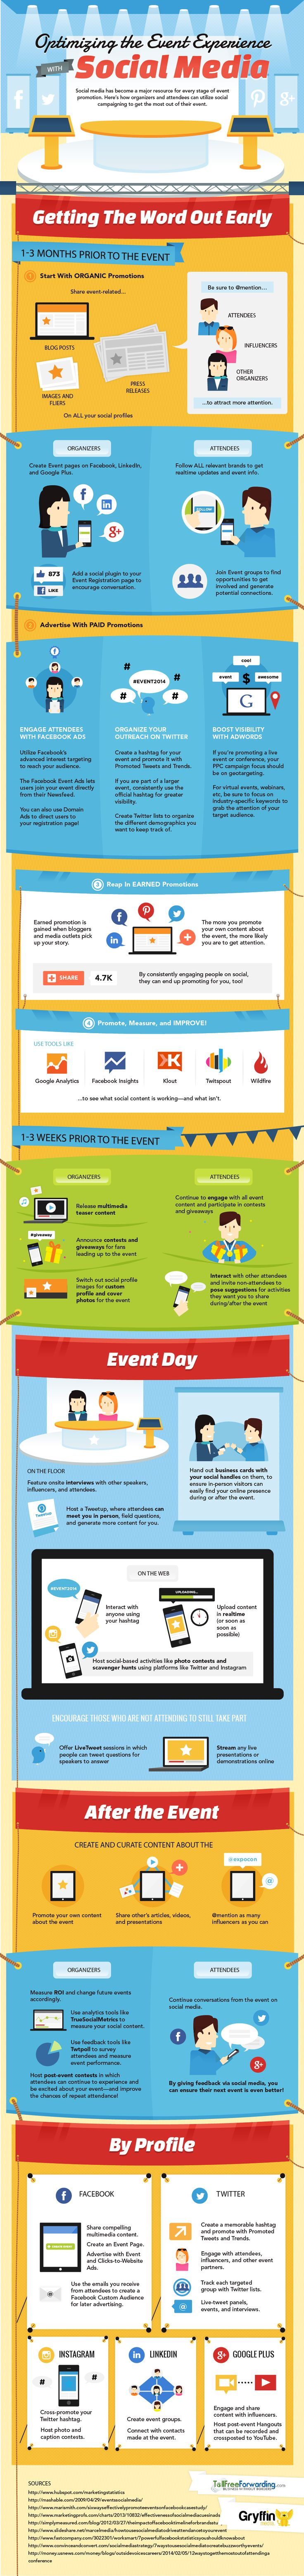 How To Use Social Media To Promote Events - #Infographic #SocialMedia #Marketing